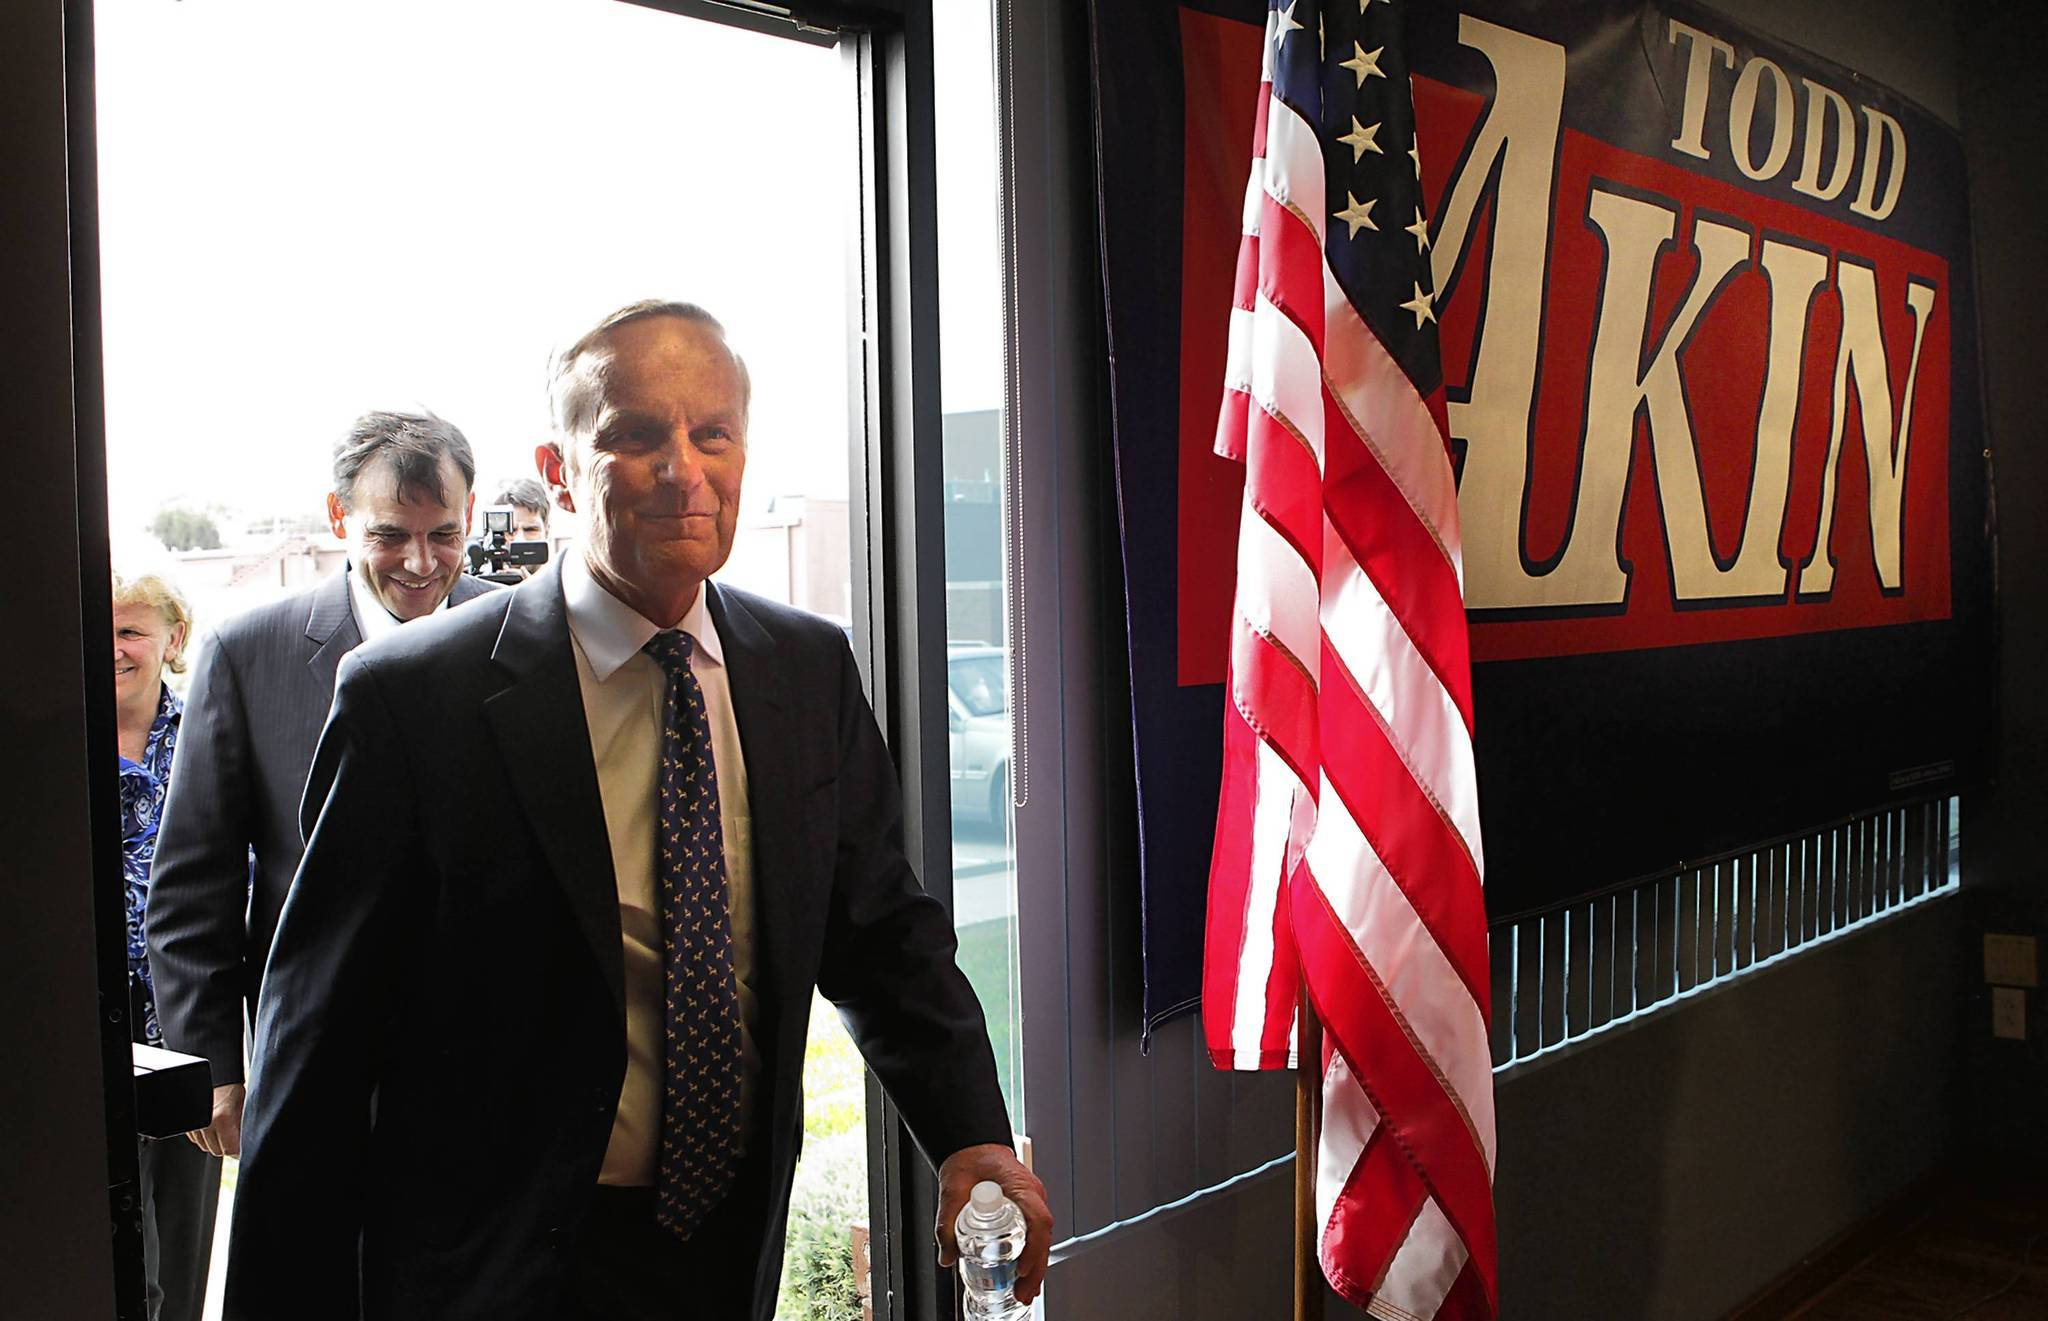 Congressman Todd Akin, R-Mo., ignited national debate with comments suggesting there were different levels of rape, to which a woman's body would accordingly react differently. Despite intense national pressure from other Republicans to bow out, Akin, foreground, is remaining in the race for a hotly contested U.S. Senate seat.